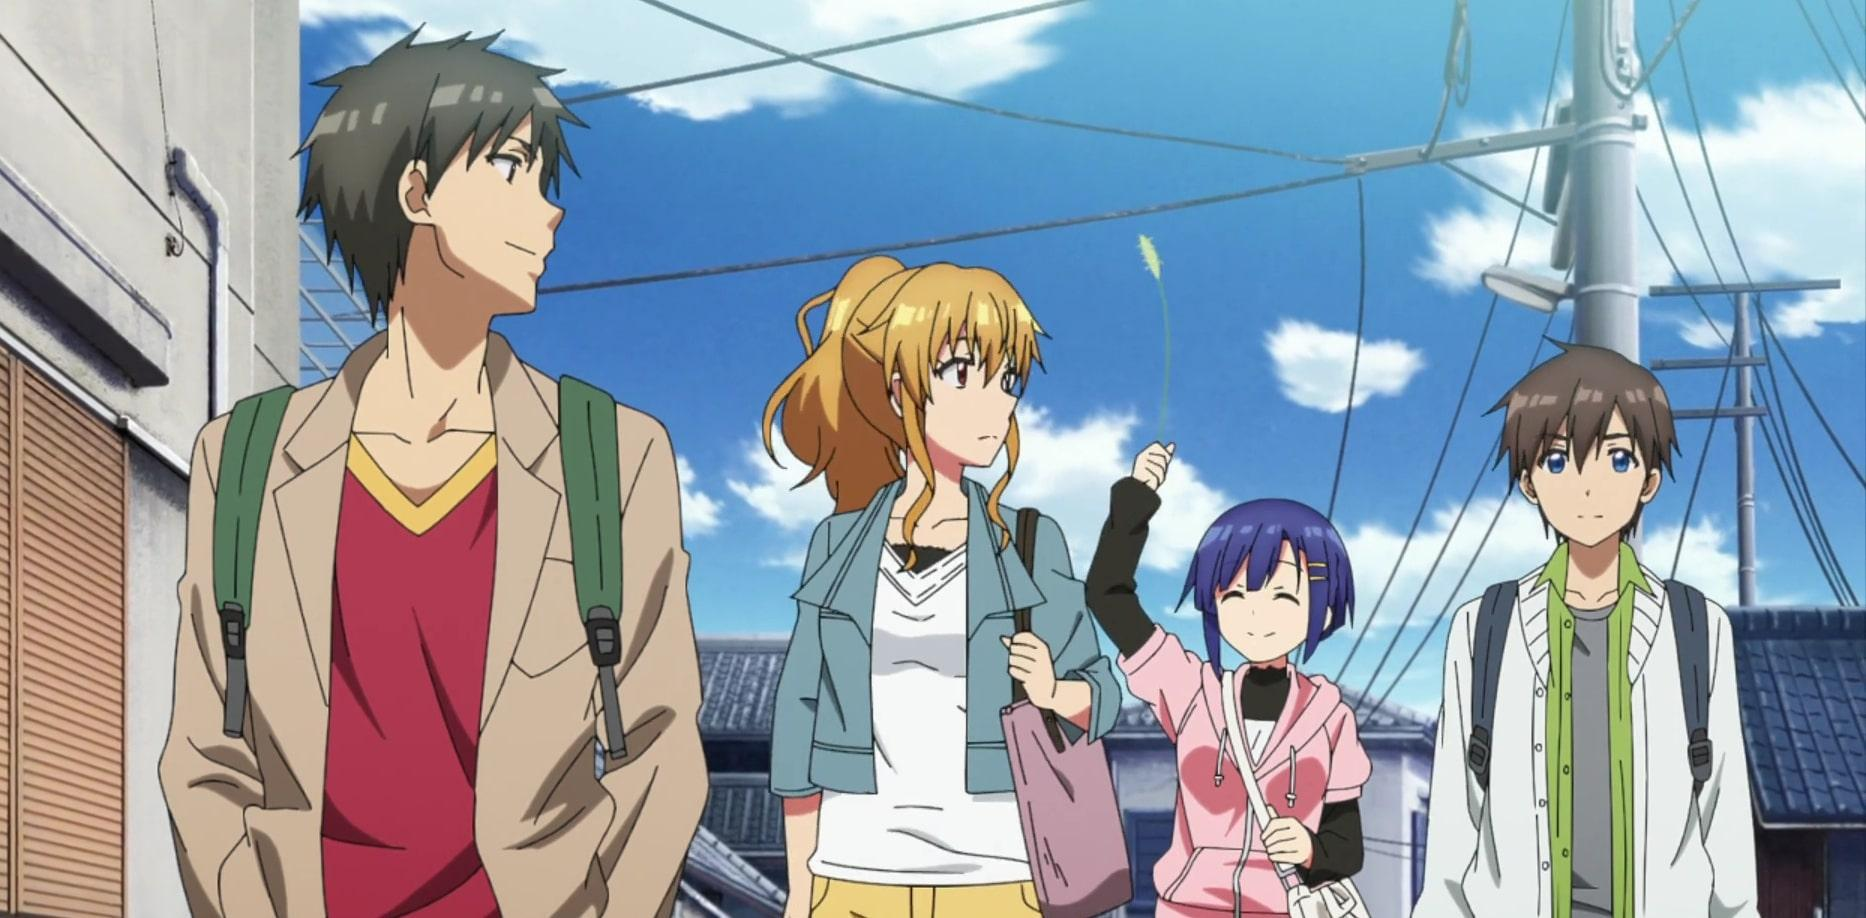 Kyouya With His Friends